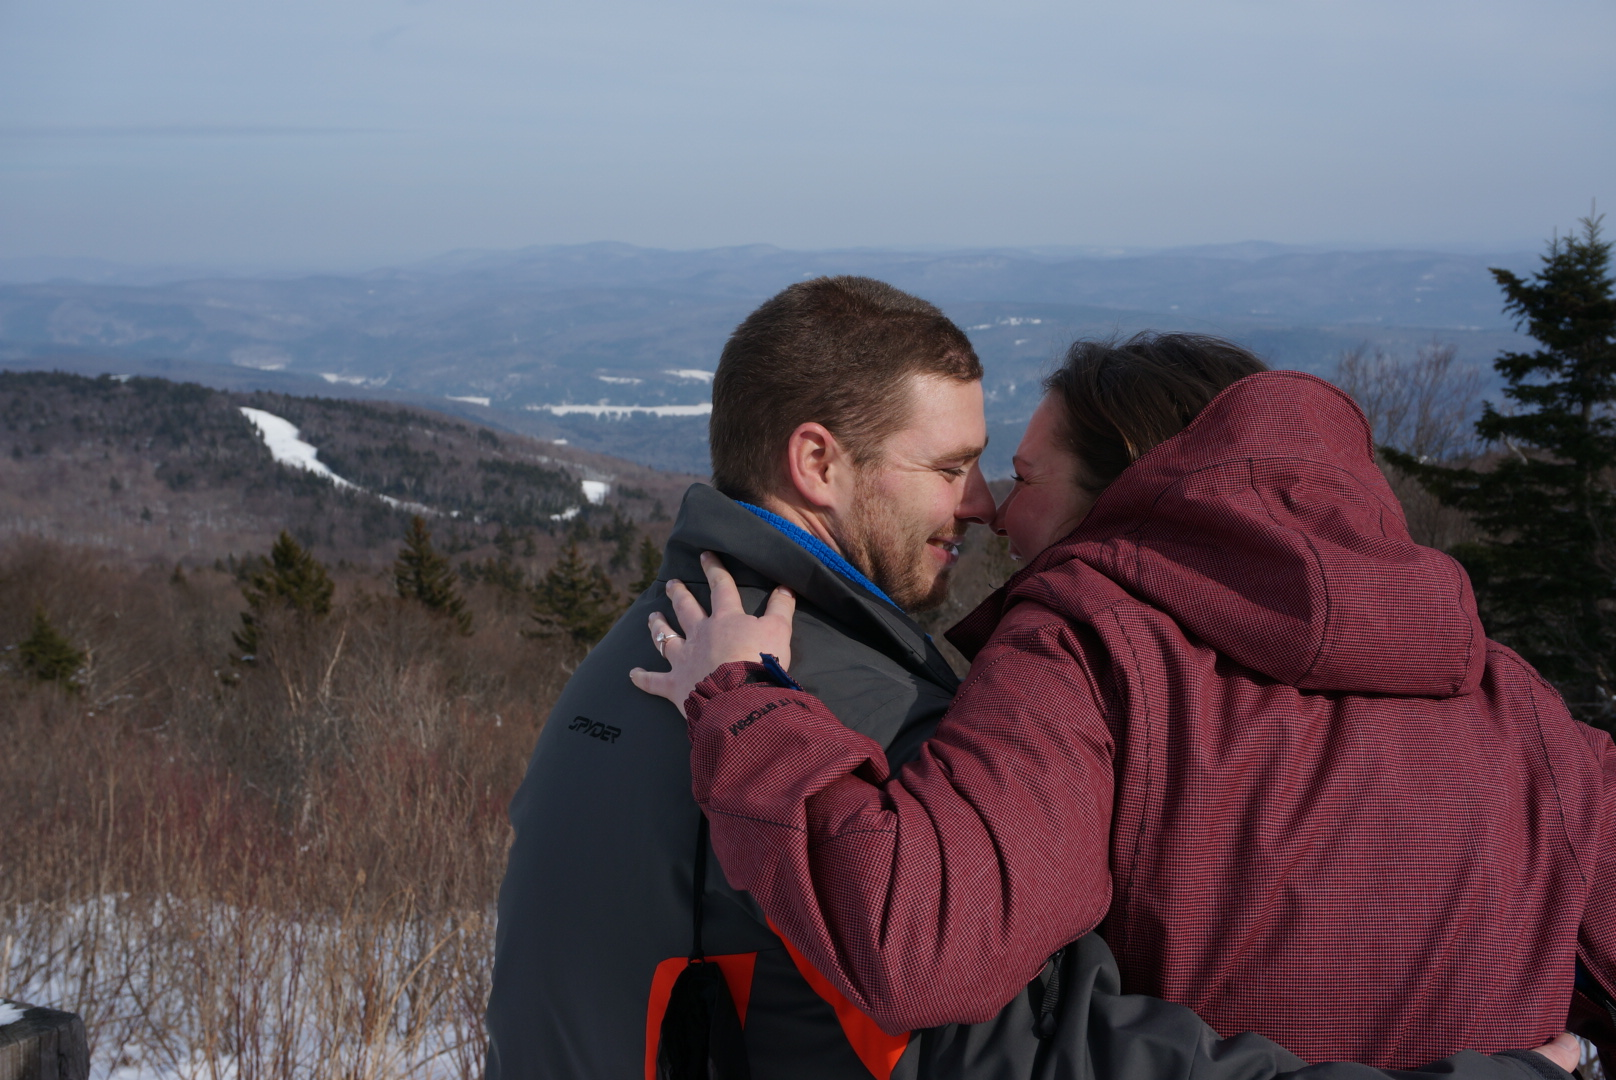 Image 18 of Sarah and Jimmy | The Perfect Mountaintop Proposal